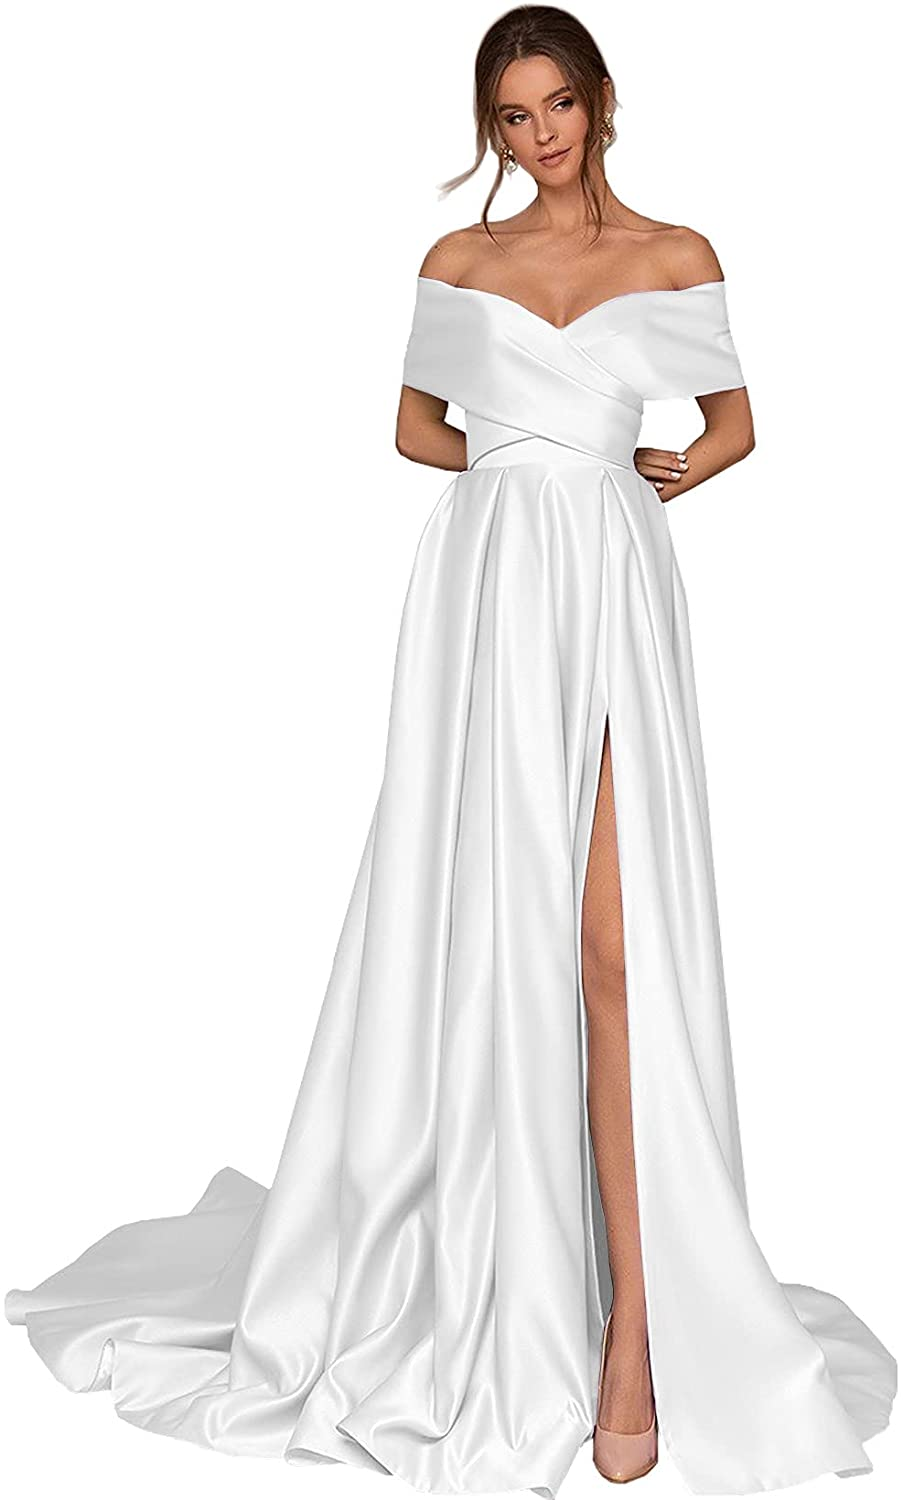 BONOYUER Women's Off The Shoulder Satin Prom Dresses High Slit A-line Long Formal Evening Gown with Pockets